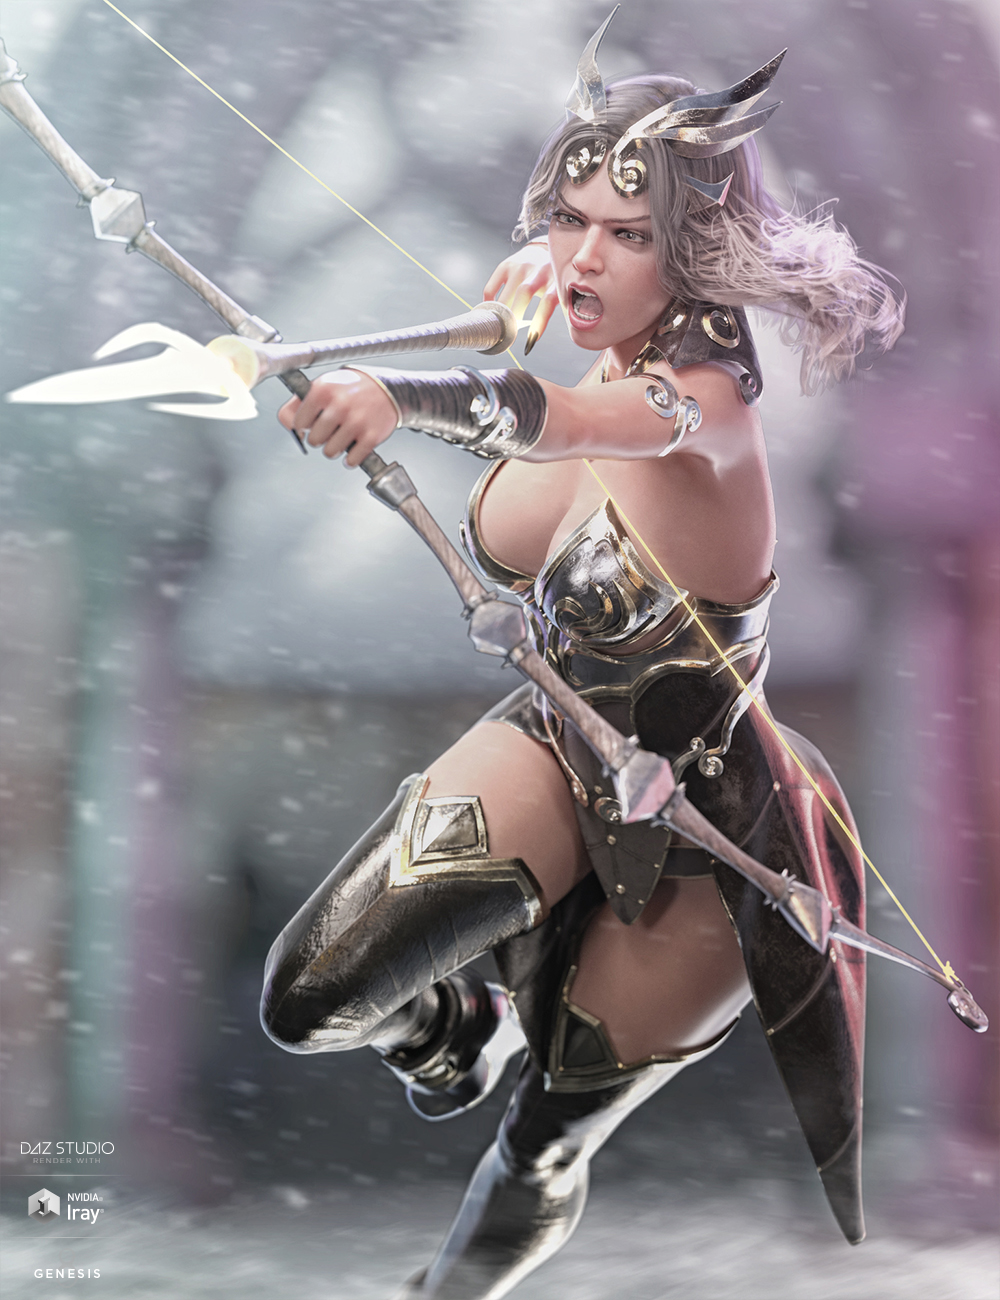 dForce Lightning Archer Outfit and Weapons by: HM, 3D Models by Daz 3D